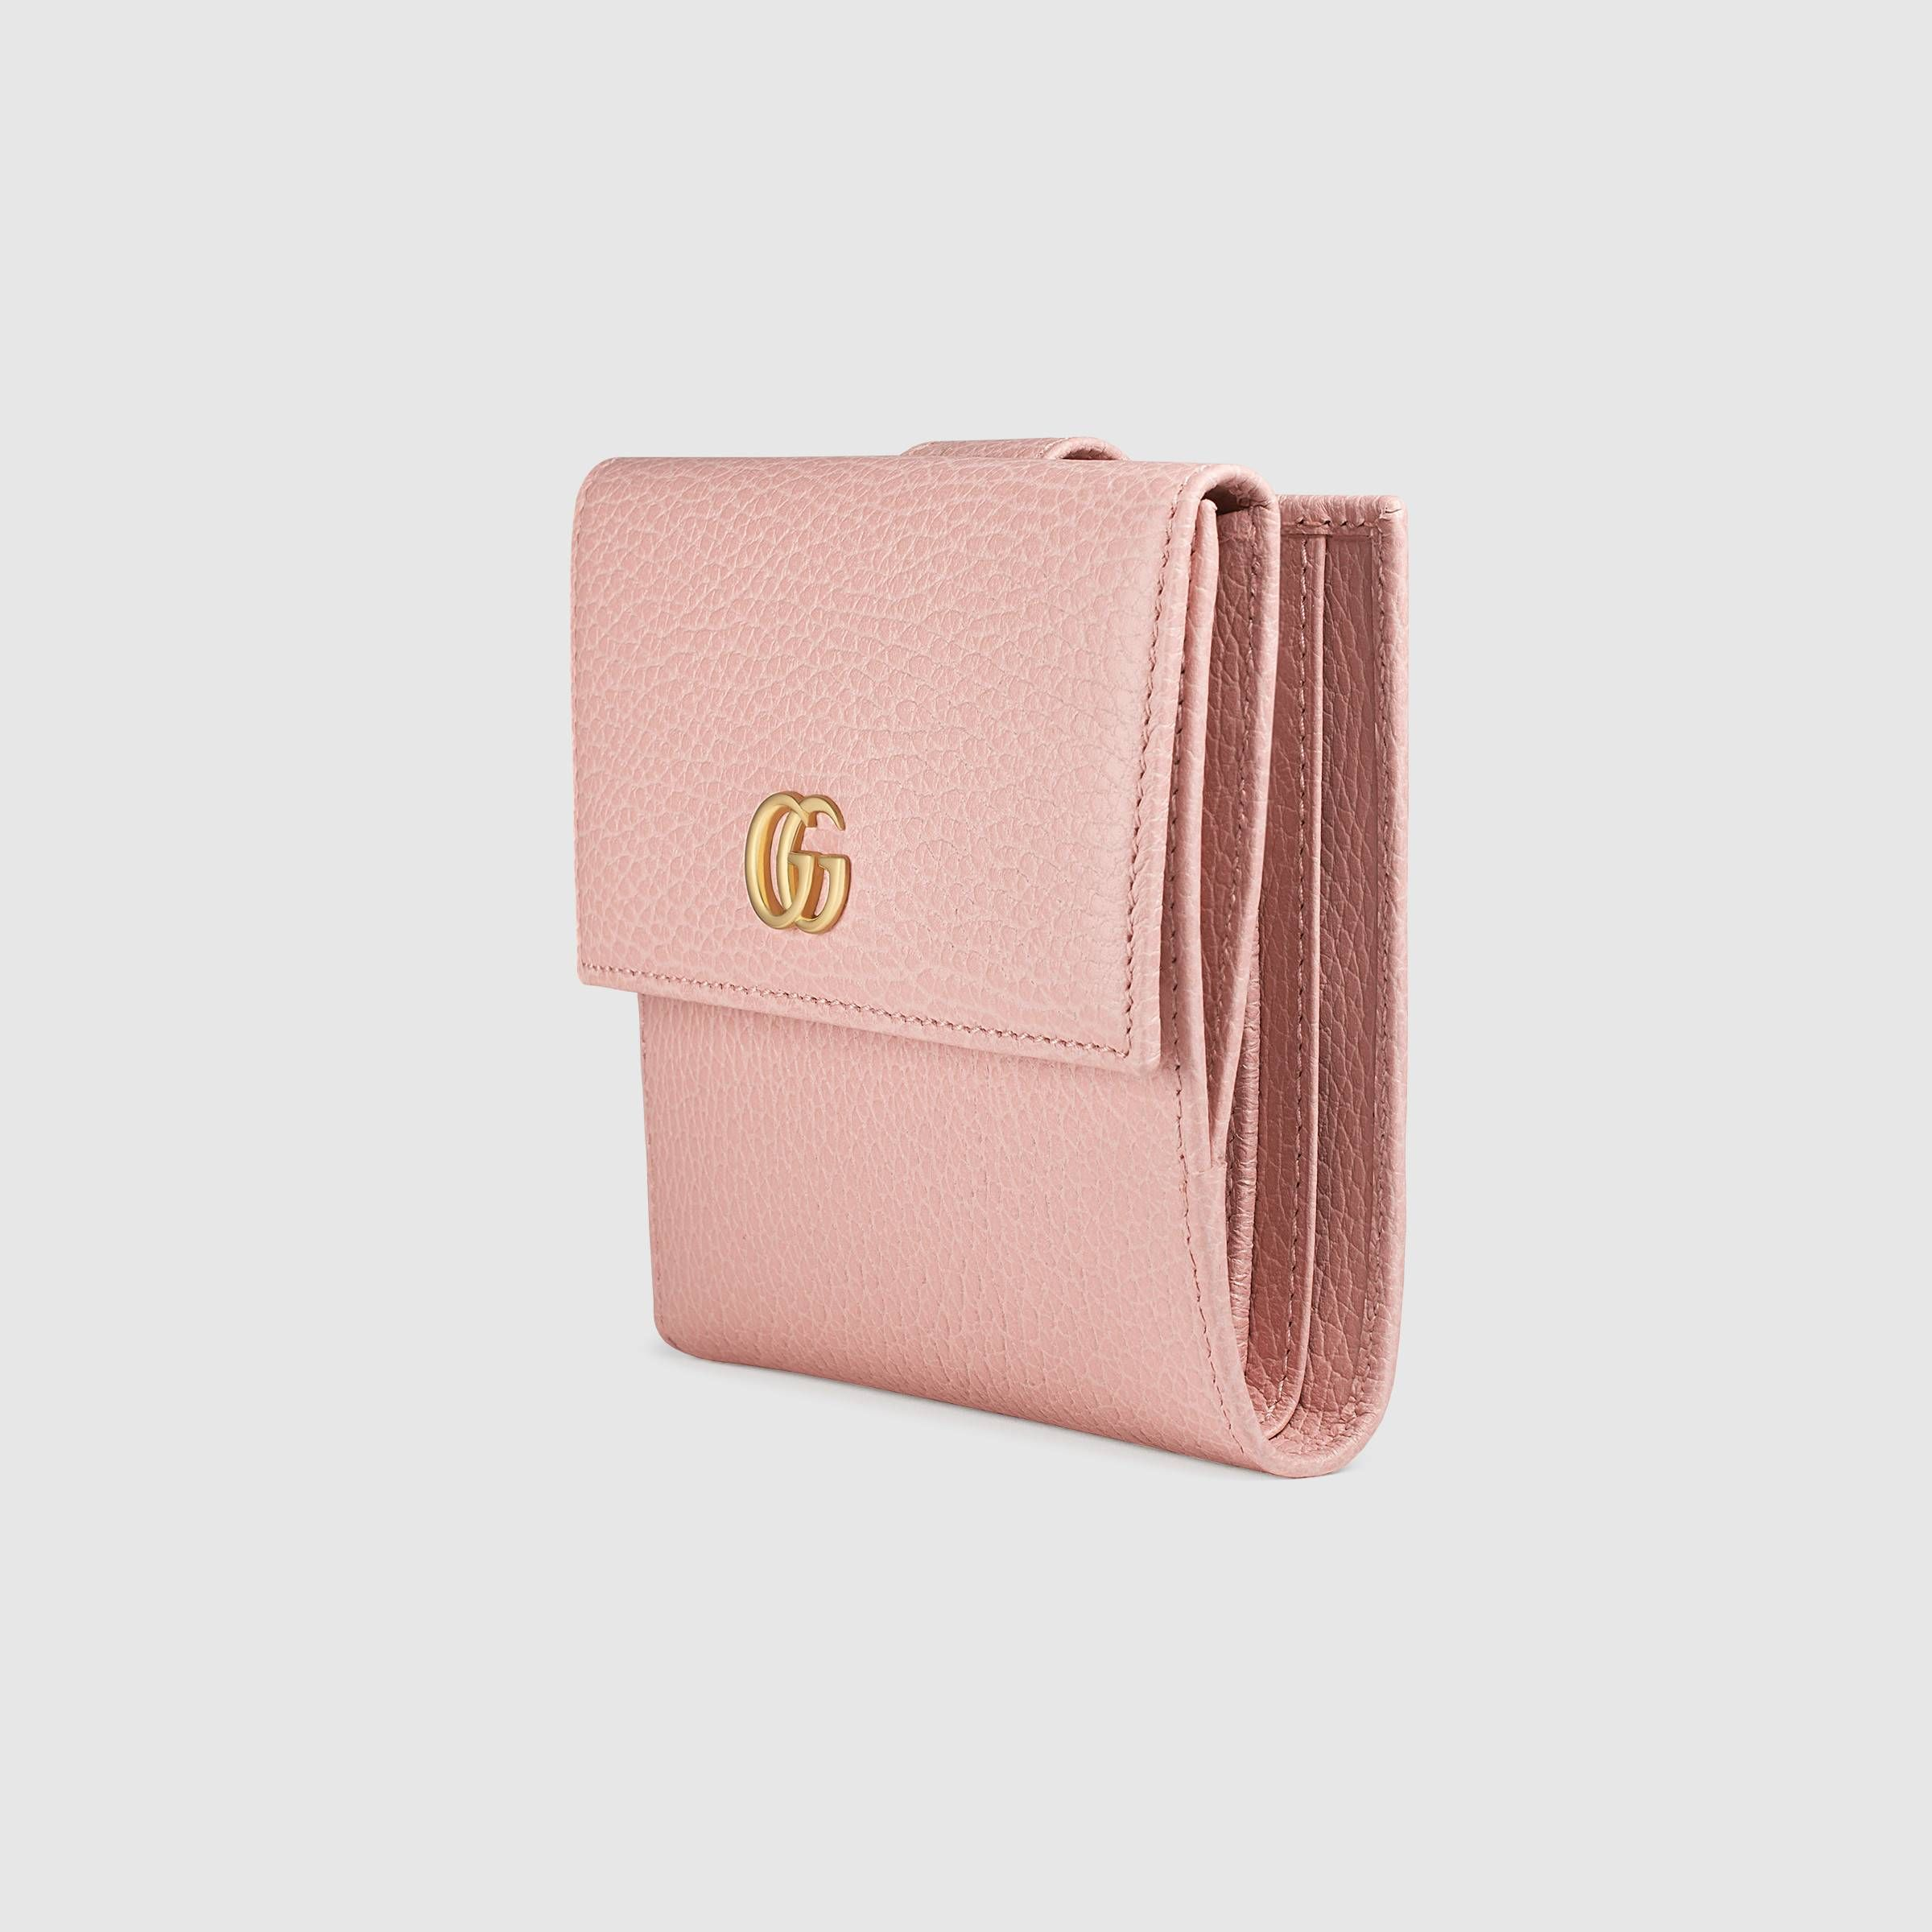 ff0206fa5dd Leather french flap wallet - Gucci Women s Wallets   Small Accessories  456122CAO0G5909